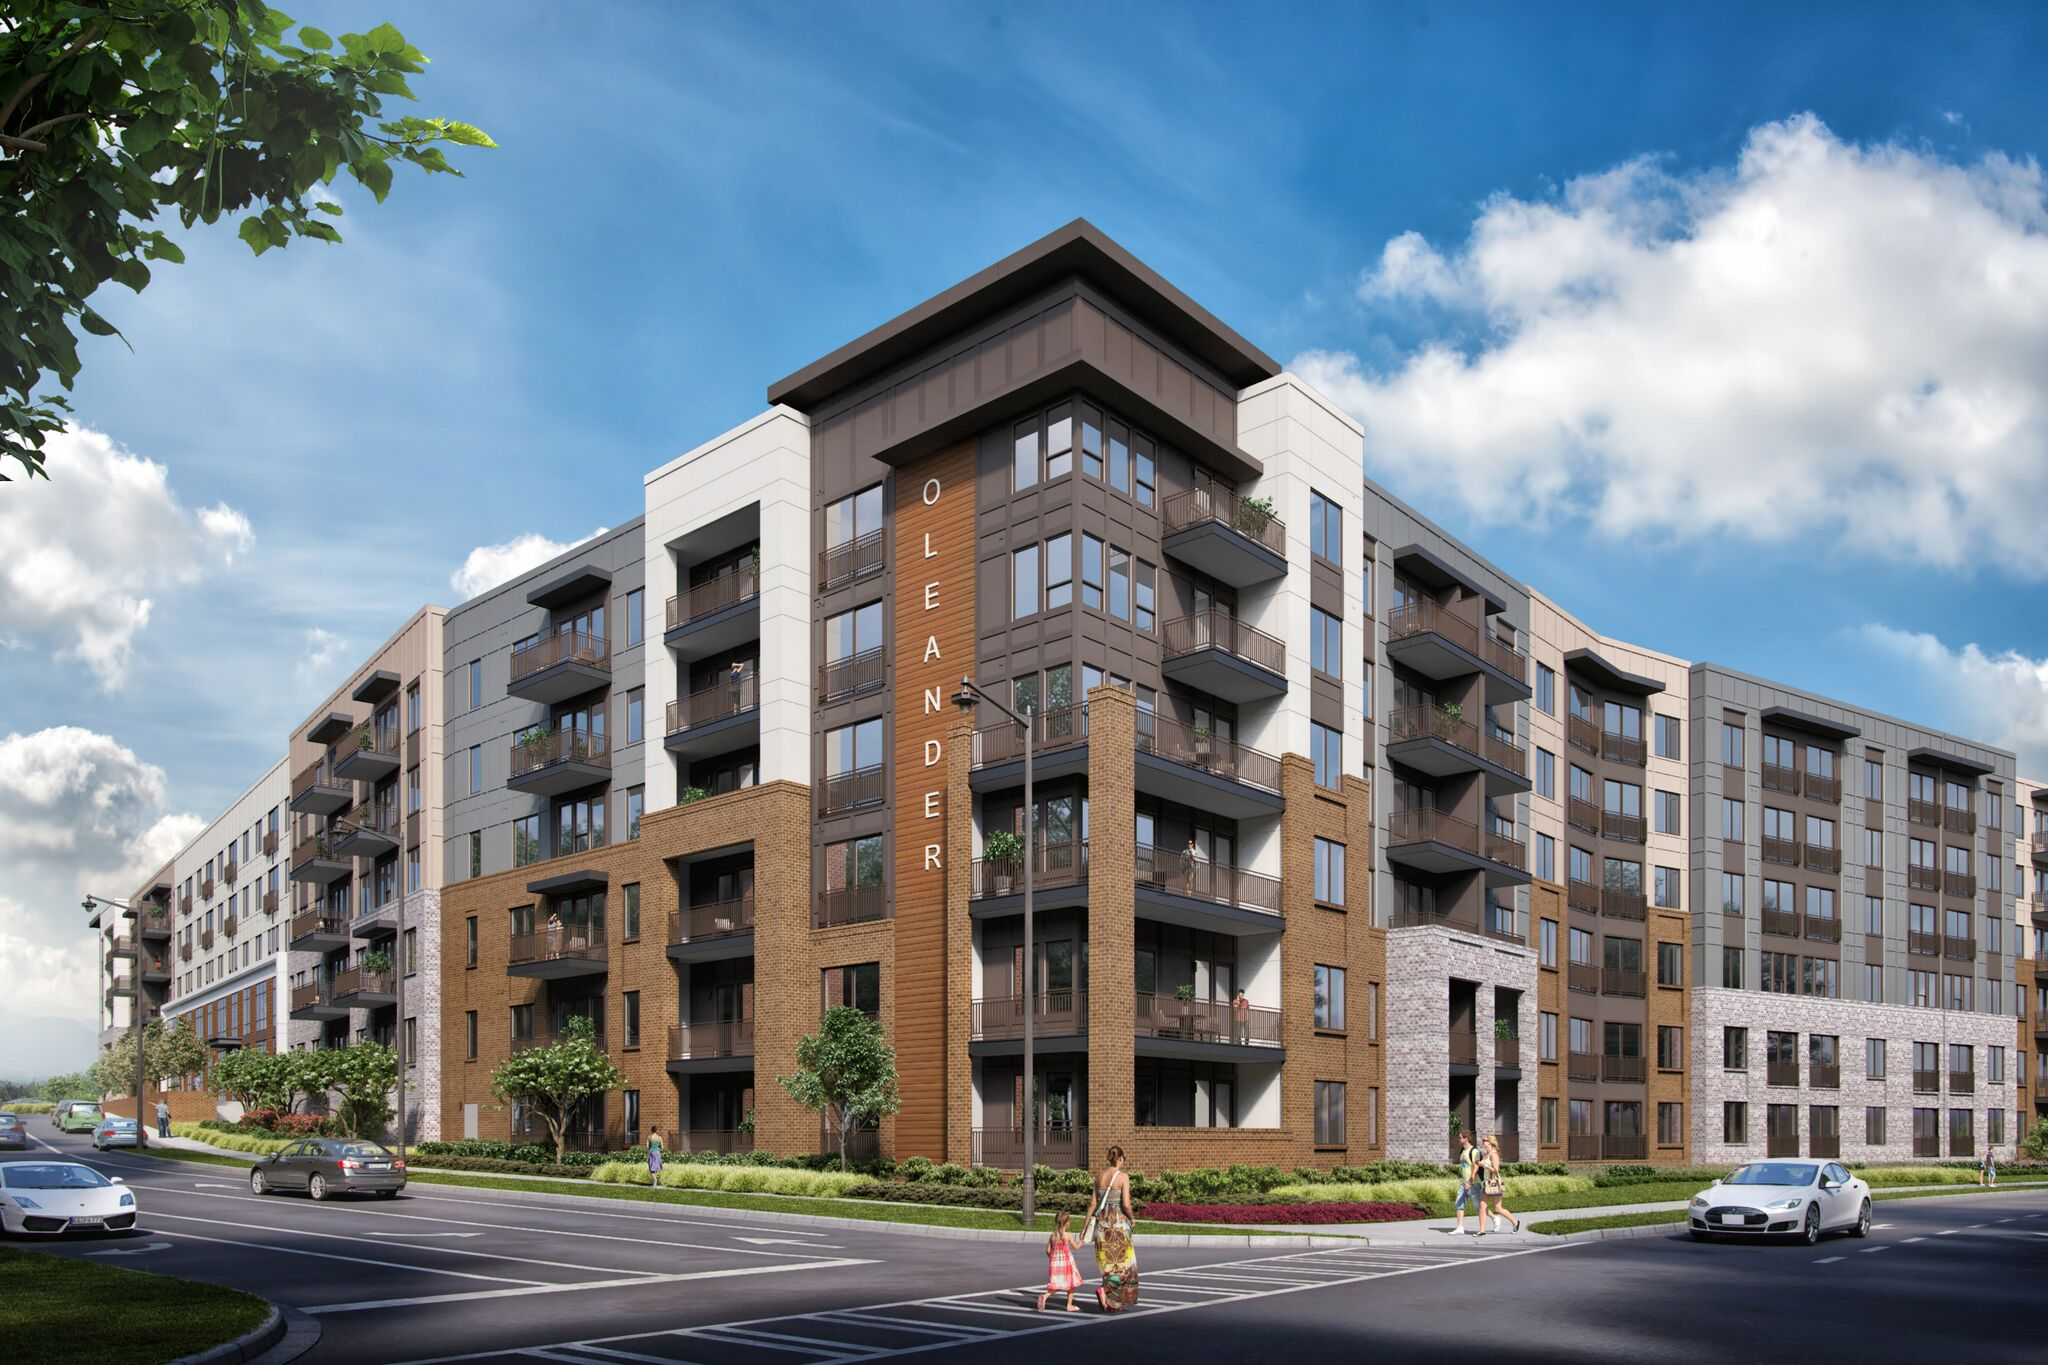 A rendering of apartments.